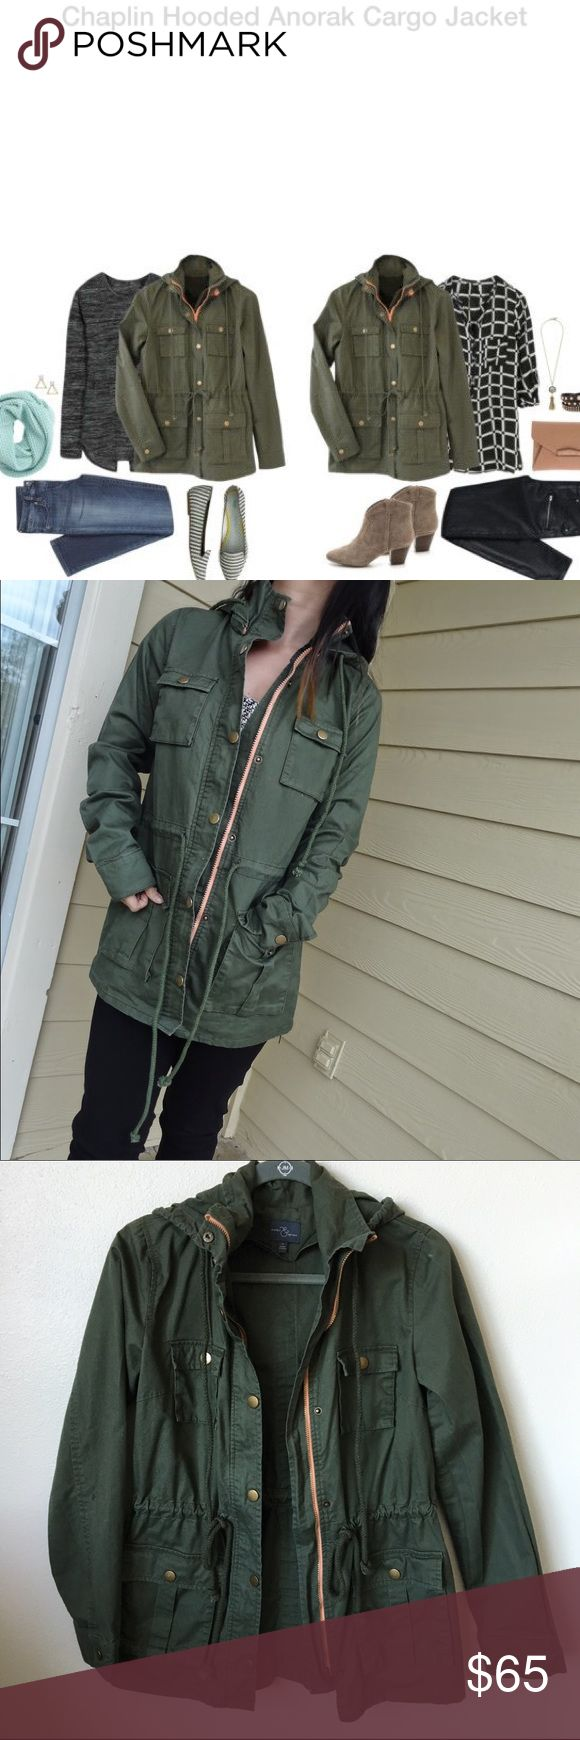 EUC Market and Spruce Anorak Cargo jacket Washed and worn 1x, in excellent condition. Market and spruce Chaplin hooded anorak cargo jacket from a Stitch Fix box! This jacket is a must have in everyone's closet but I already have a few..  Stitch Fix Jackets & Coats